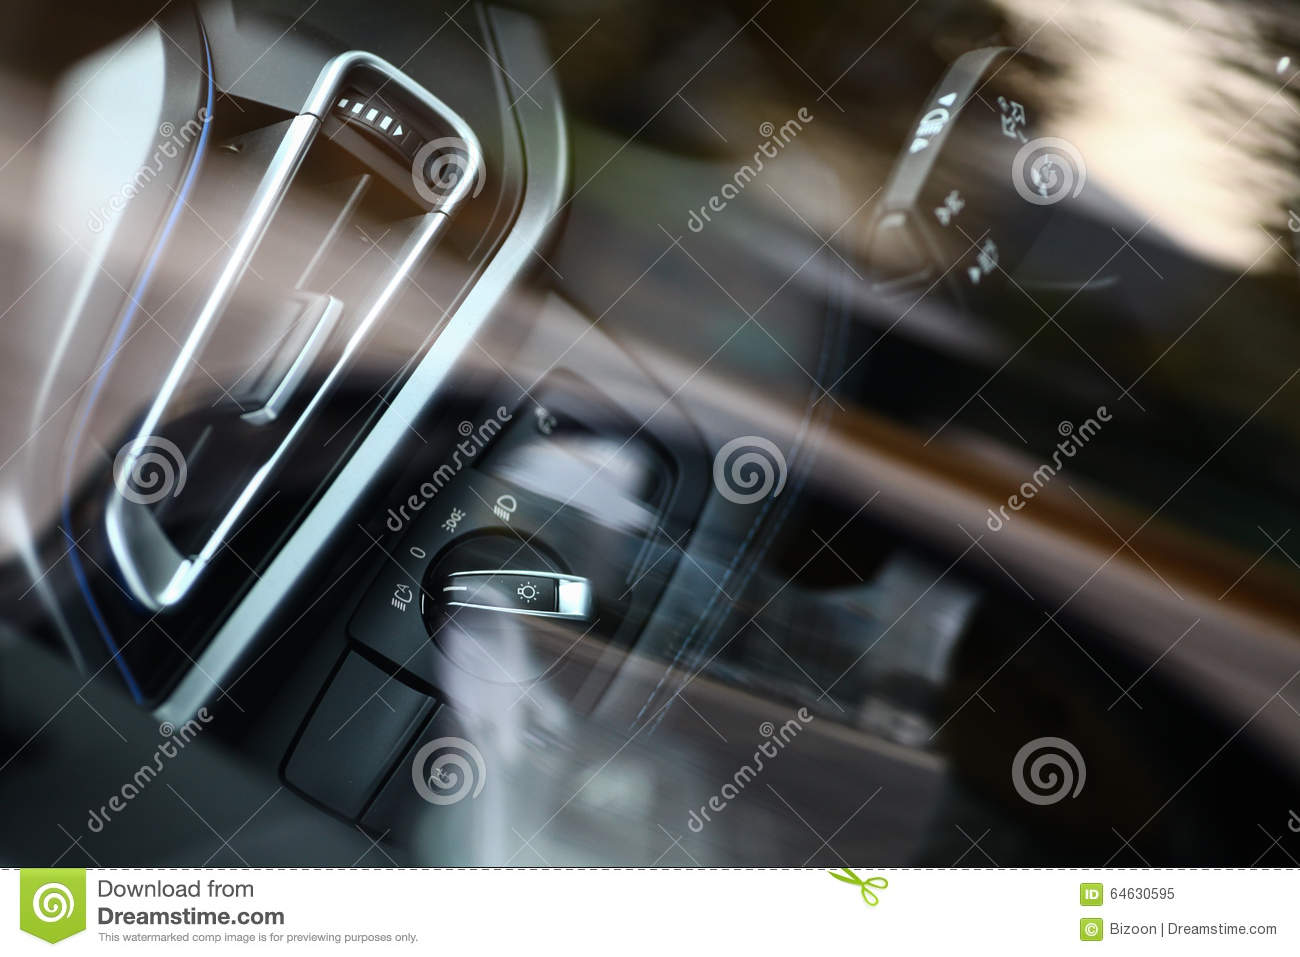 Car Headlight Switch Stock Image Of Light Plastic 64630595 Download